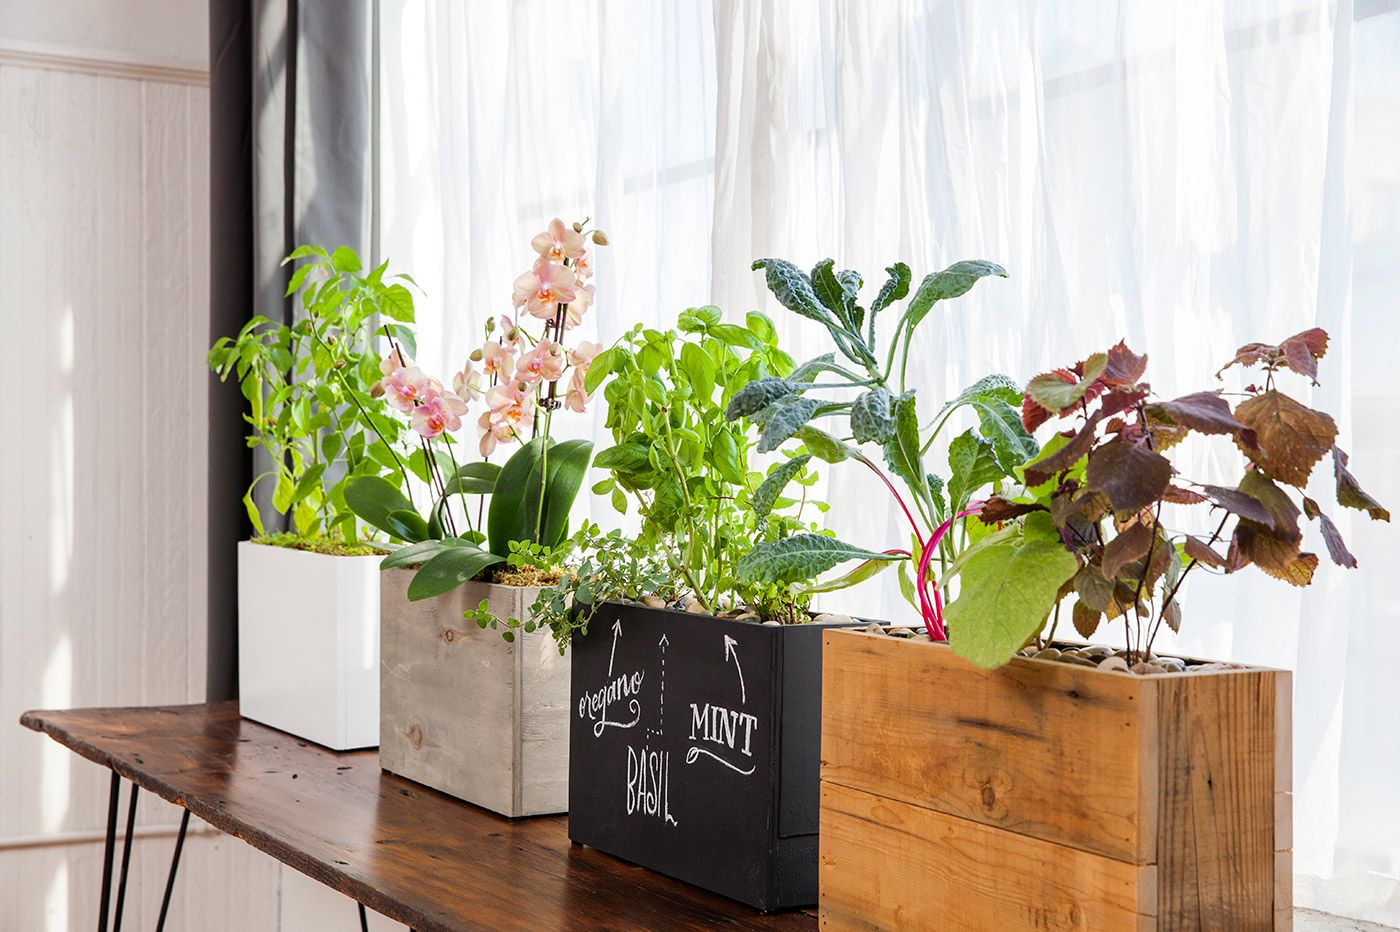 Hydroponic, solar-powered planters from Modern Sprout